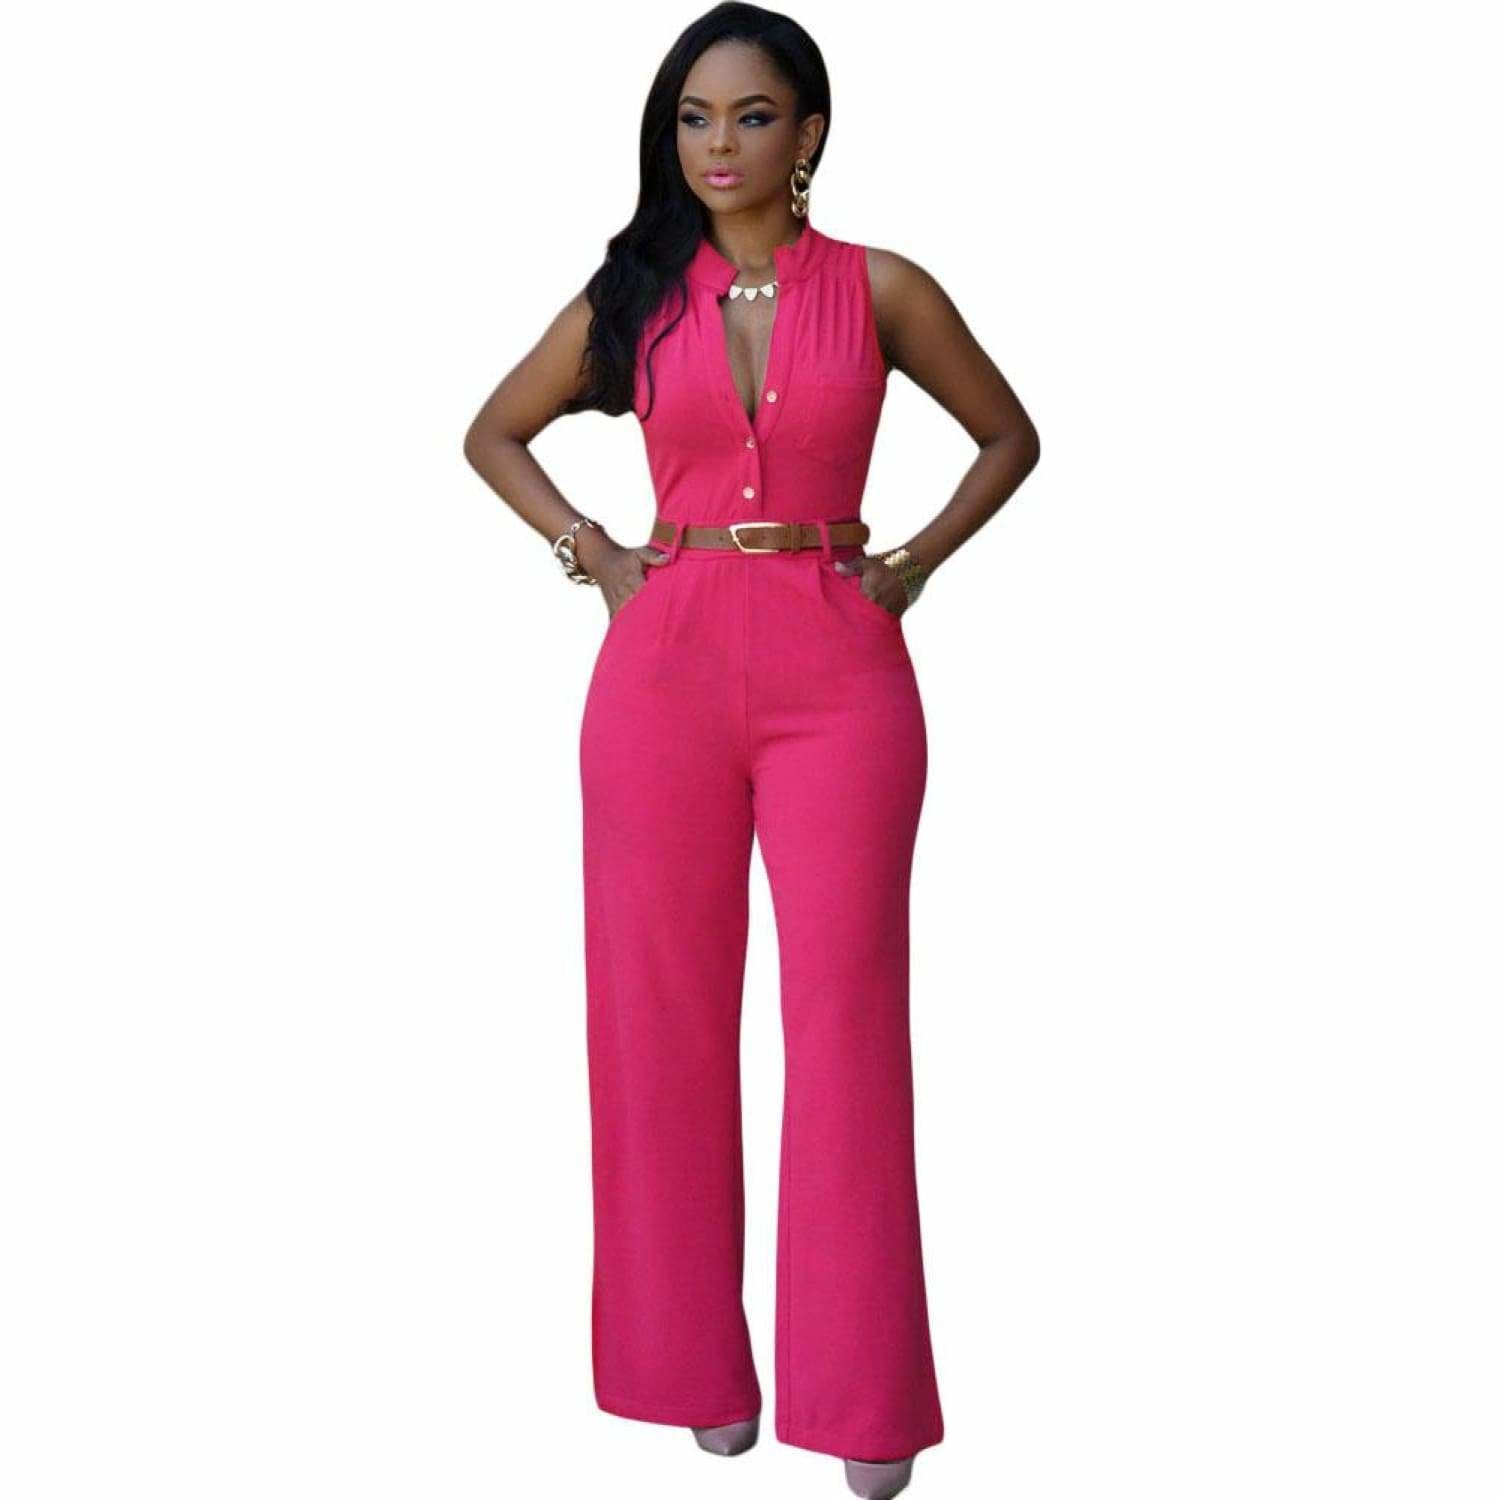 Belted Wide Leg Jumpsuit - Best YOU by HTS